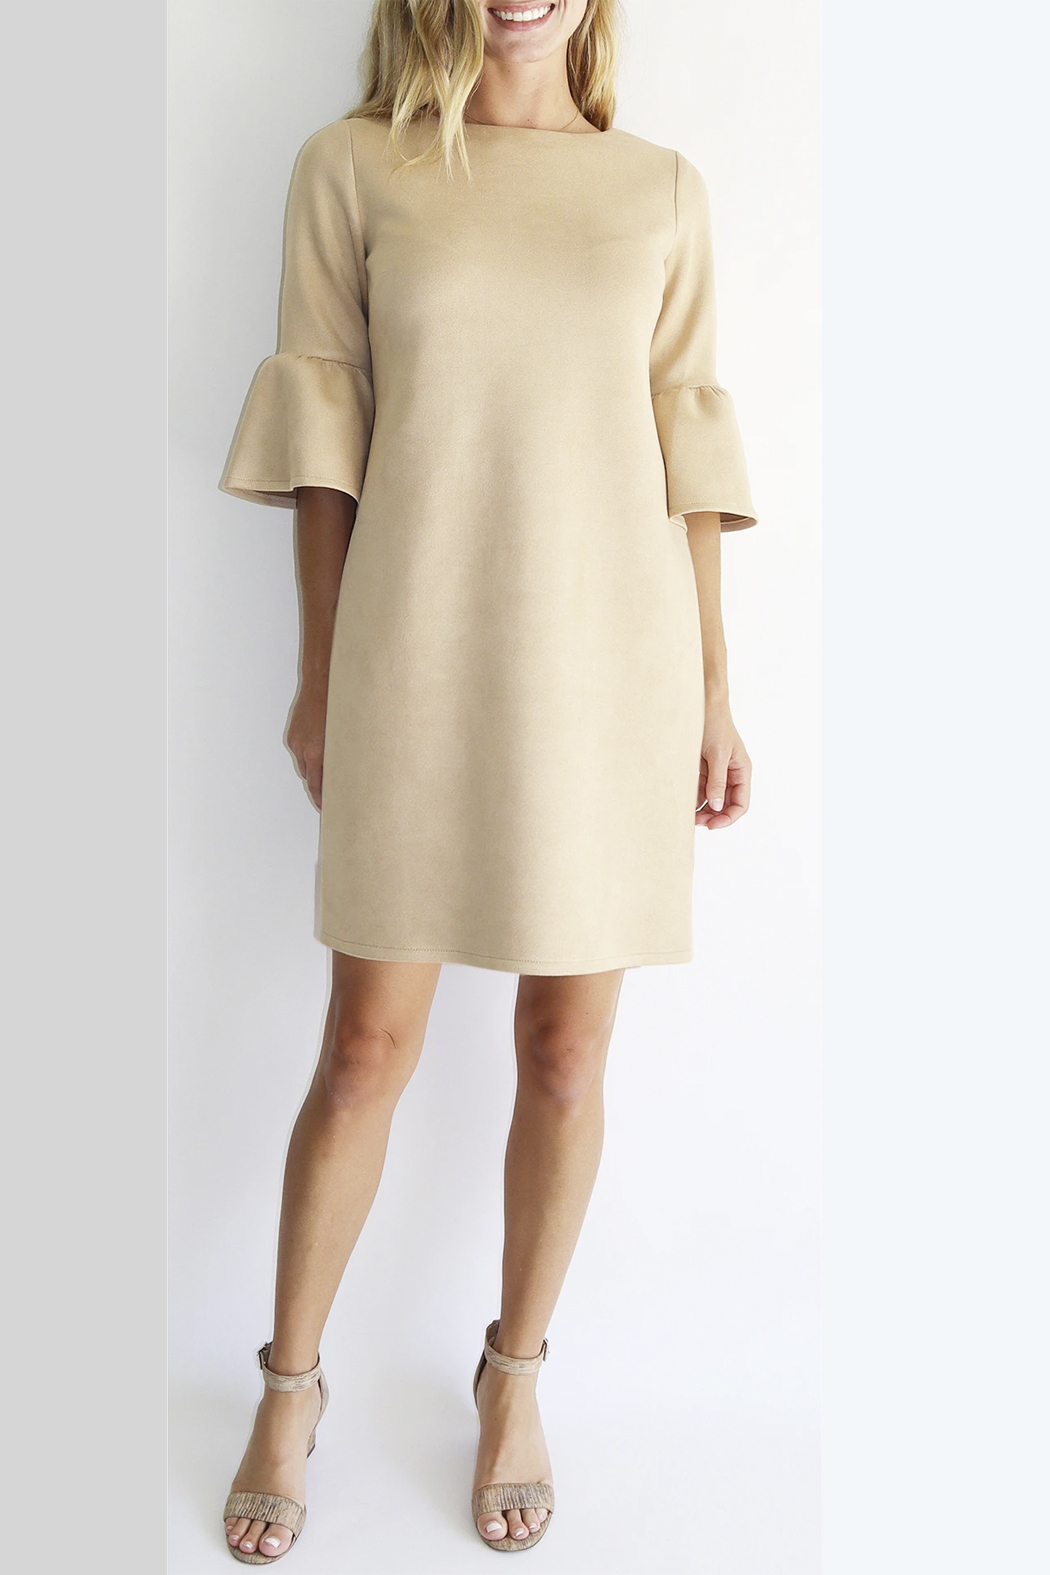 Jude Connally Shelby Faux Suede Dress - Main Image